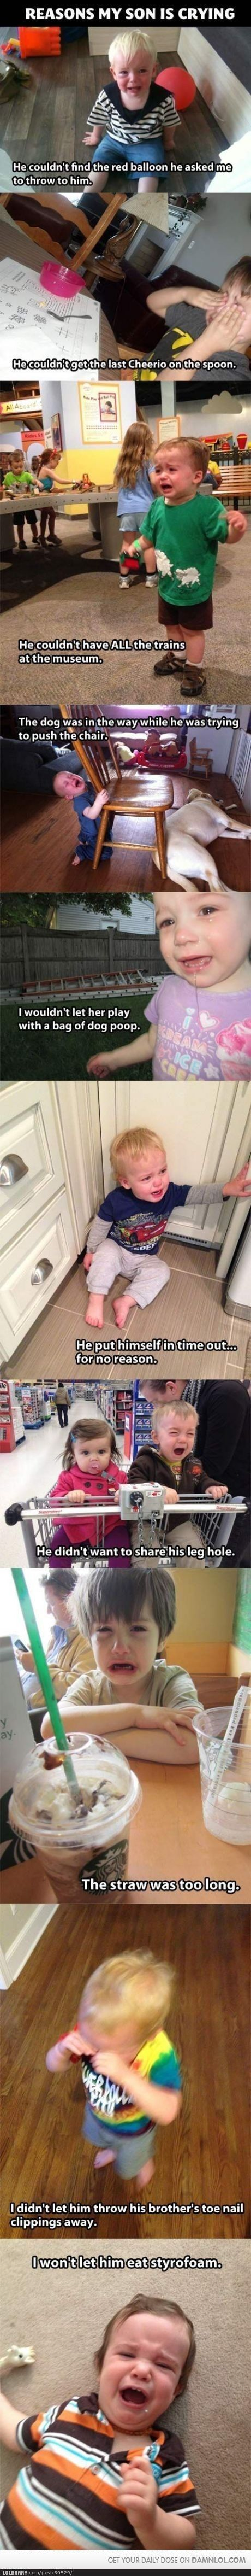 best giggles images on pinterest funny stuff funny things and